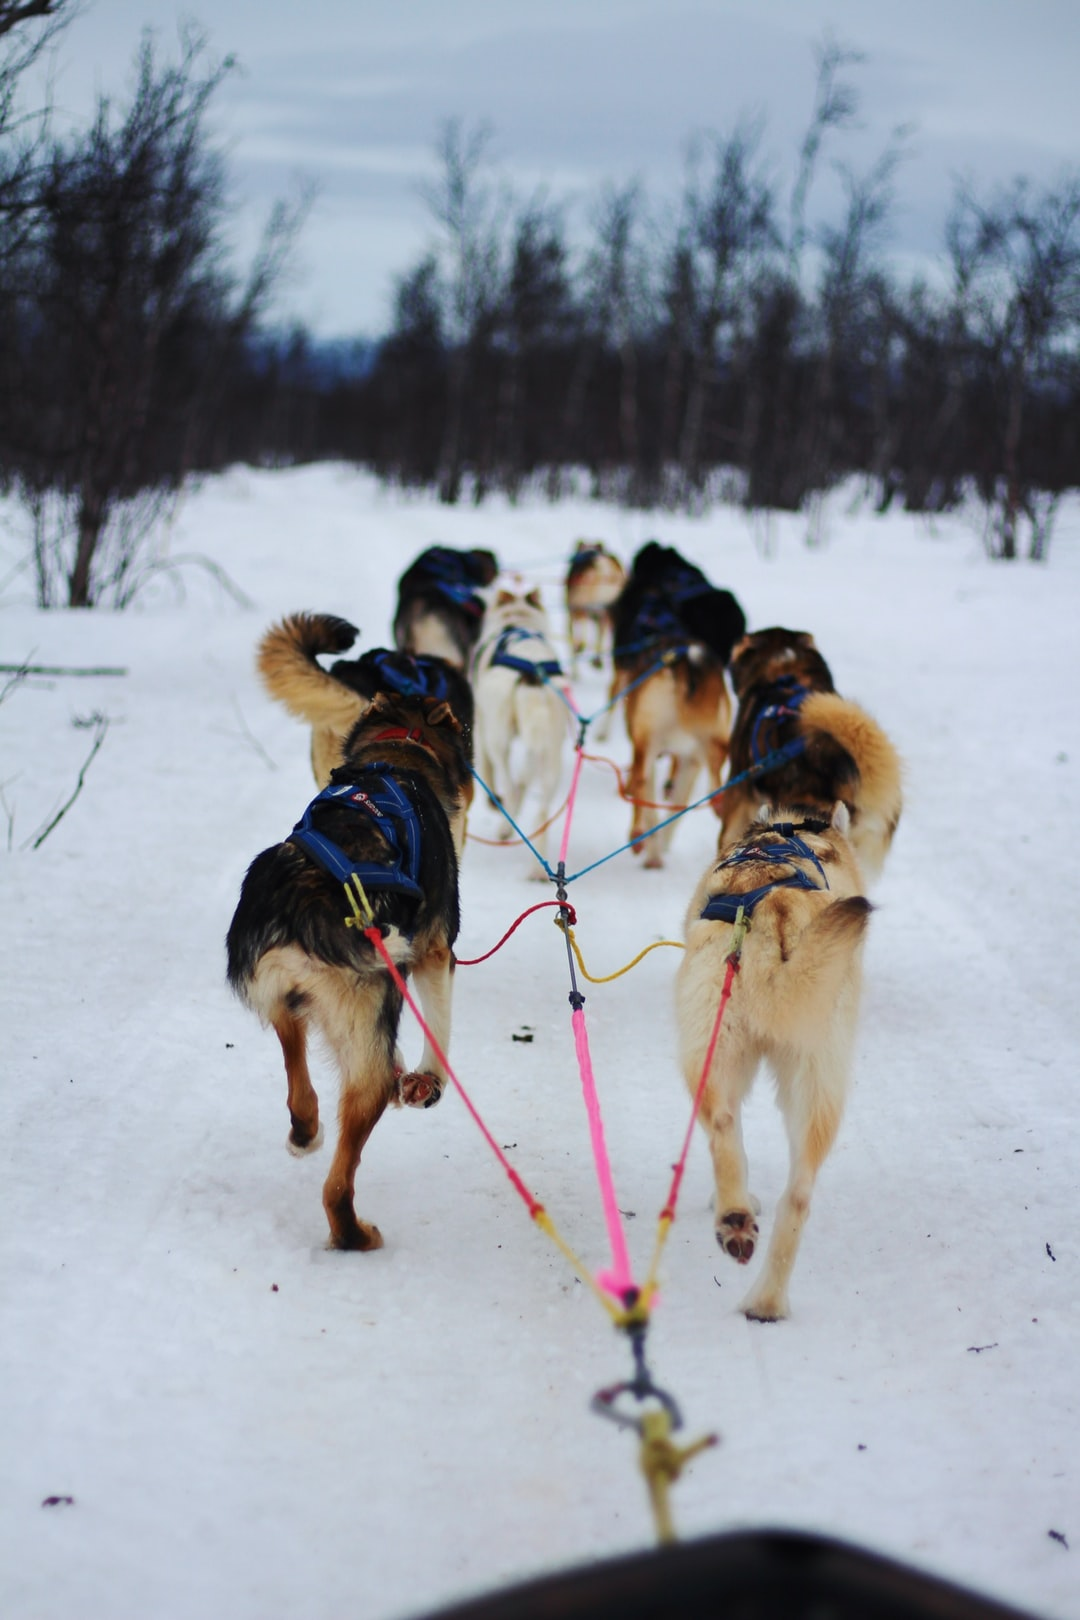 I took this photo during my trip in Swedish Lapland . An adventure on a dogsledge through the beautiful Swedish nature